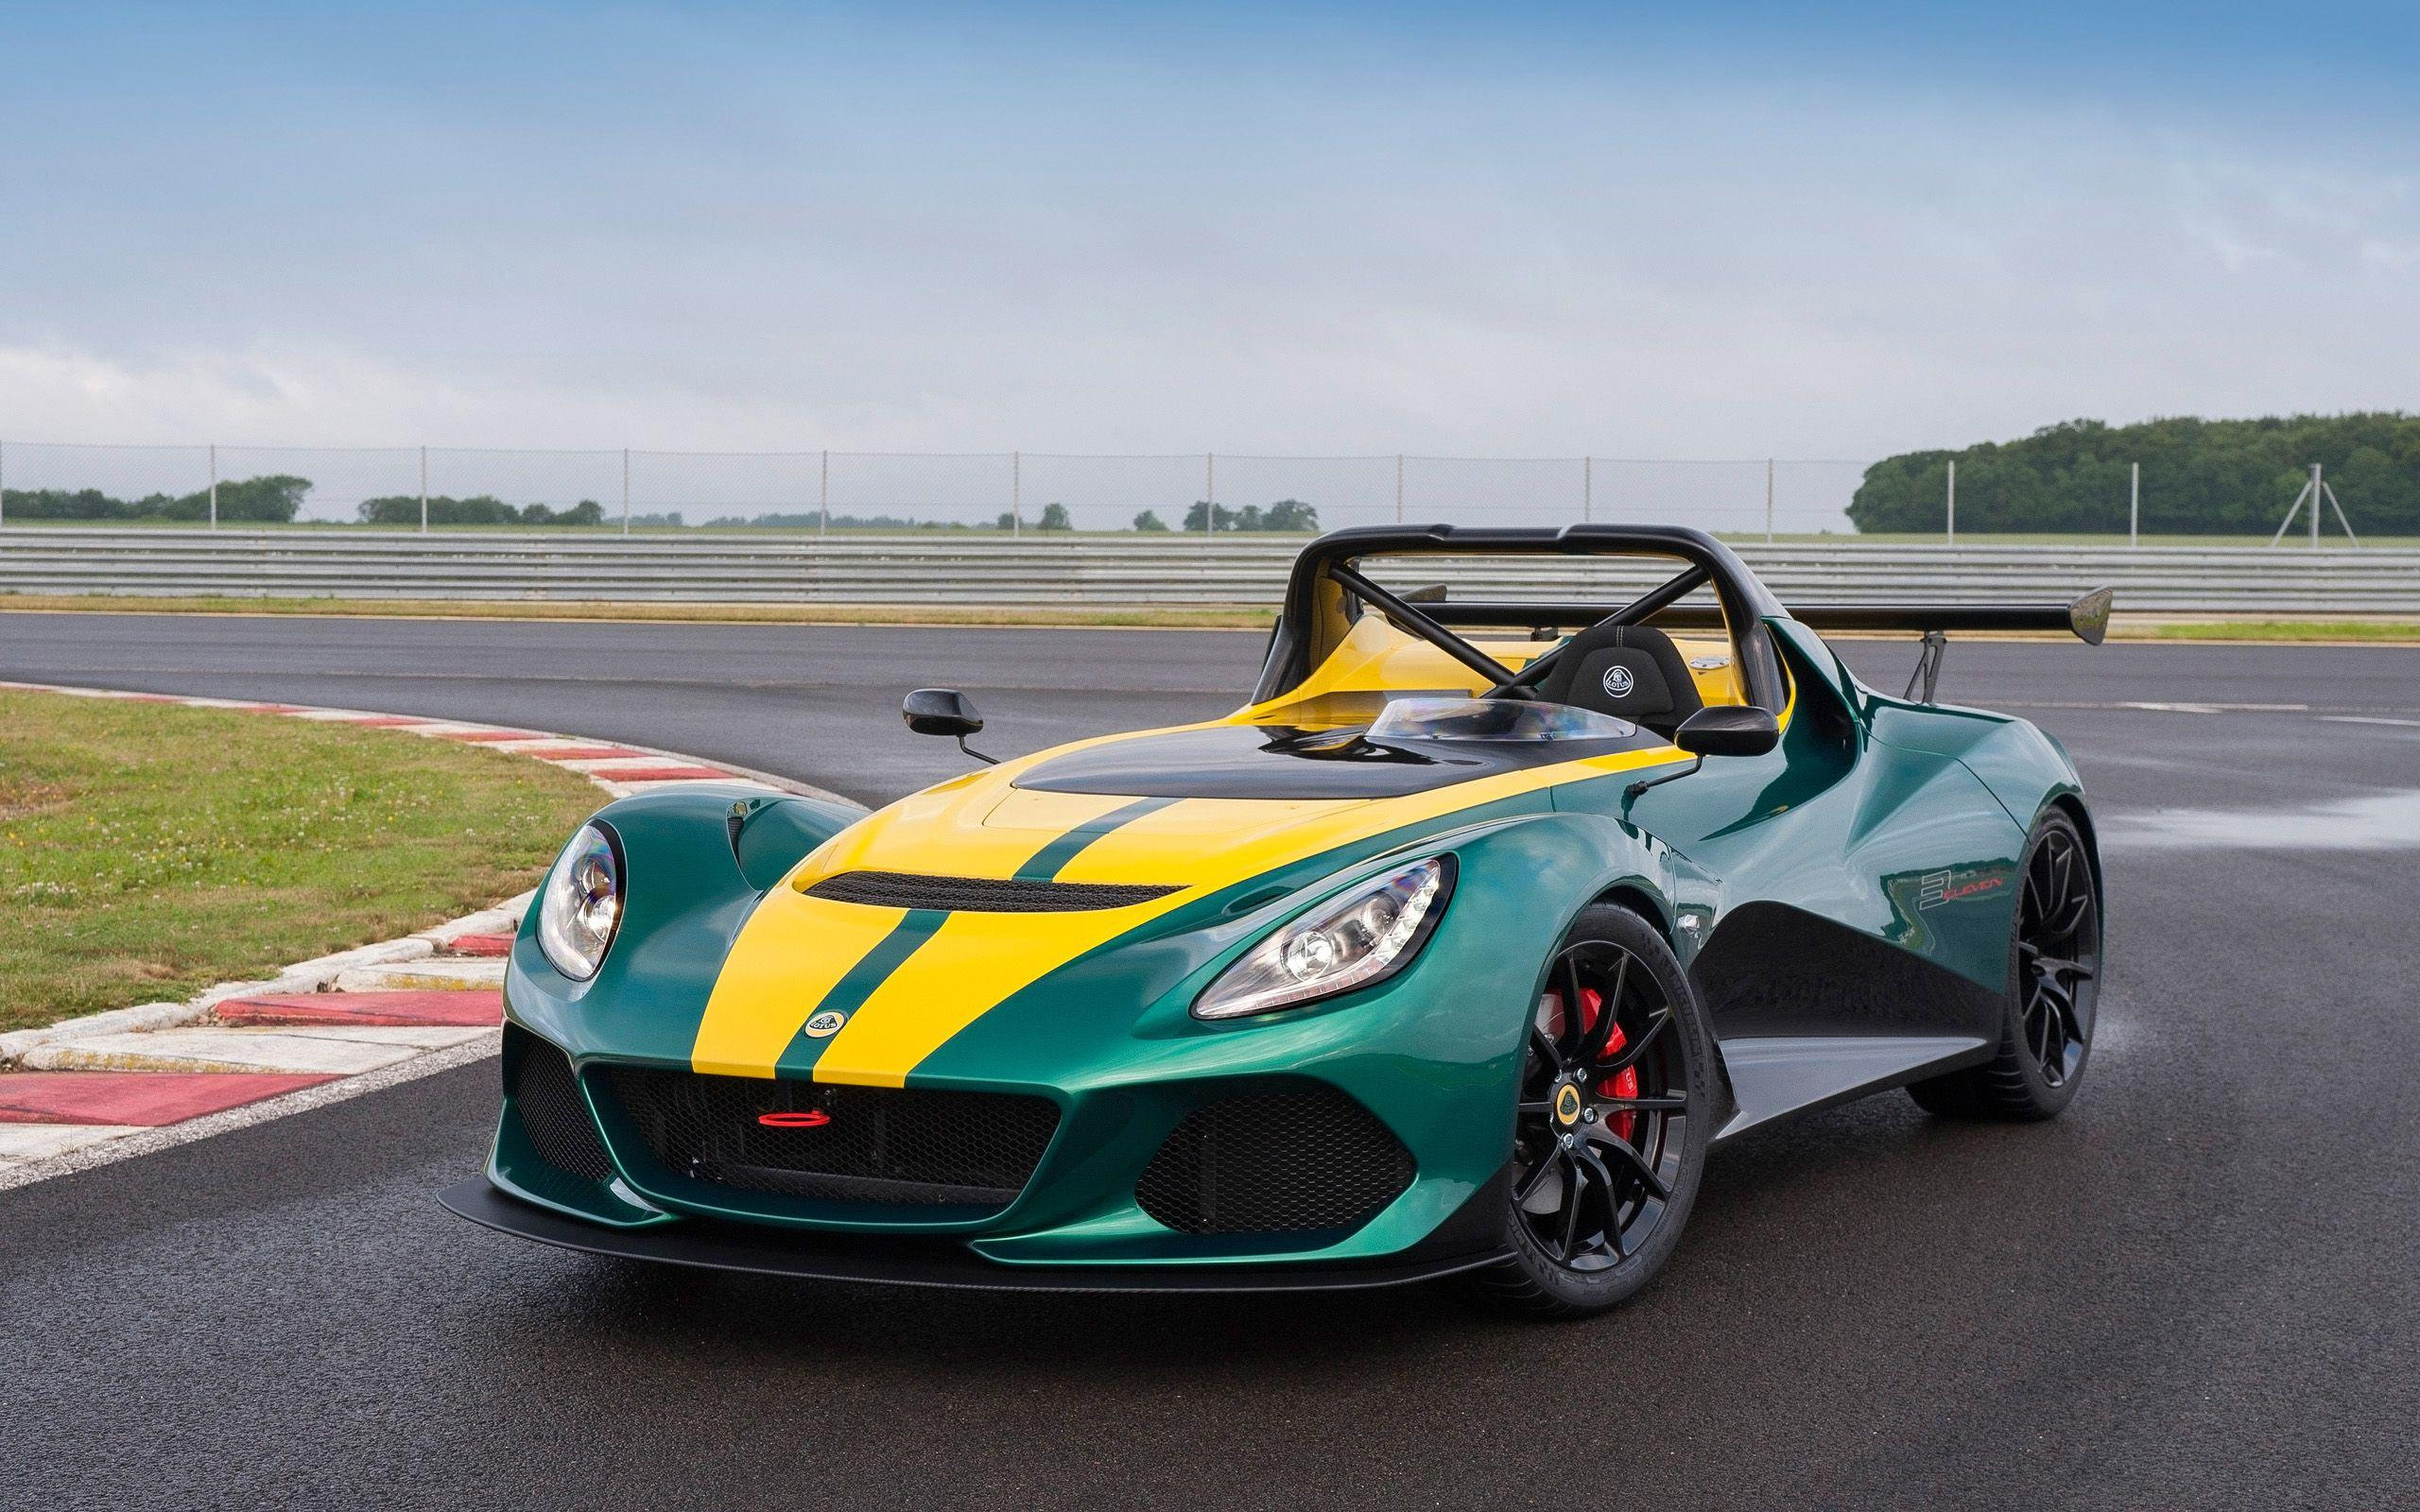 Lotus Car Wallpapers - Page 1 - HD Car Wallpapers